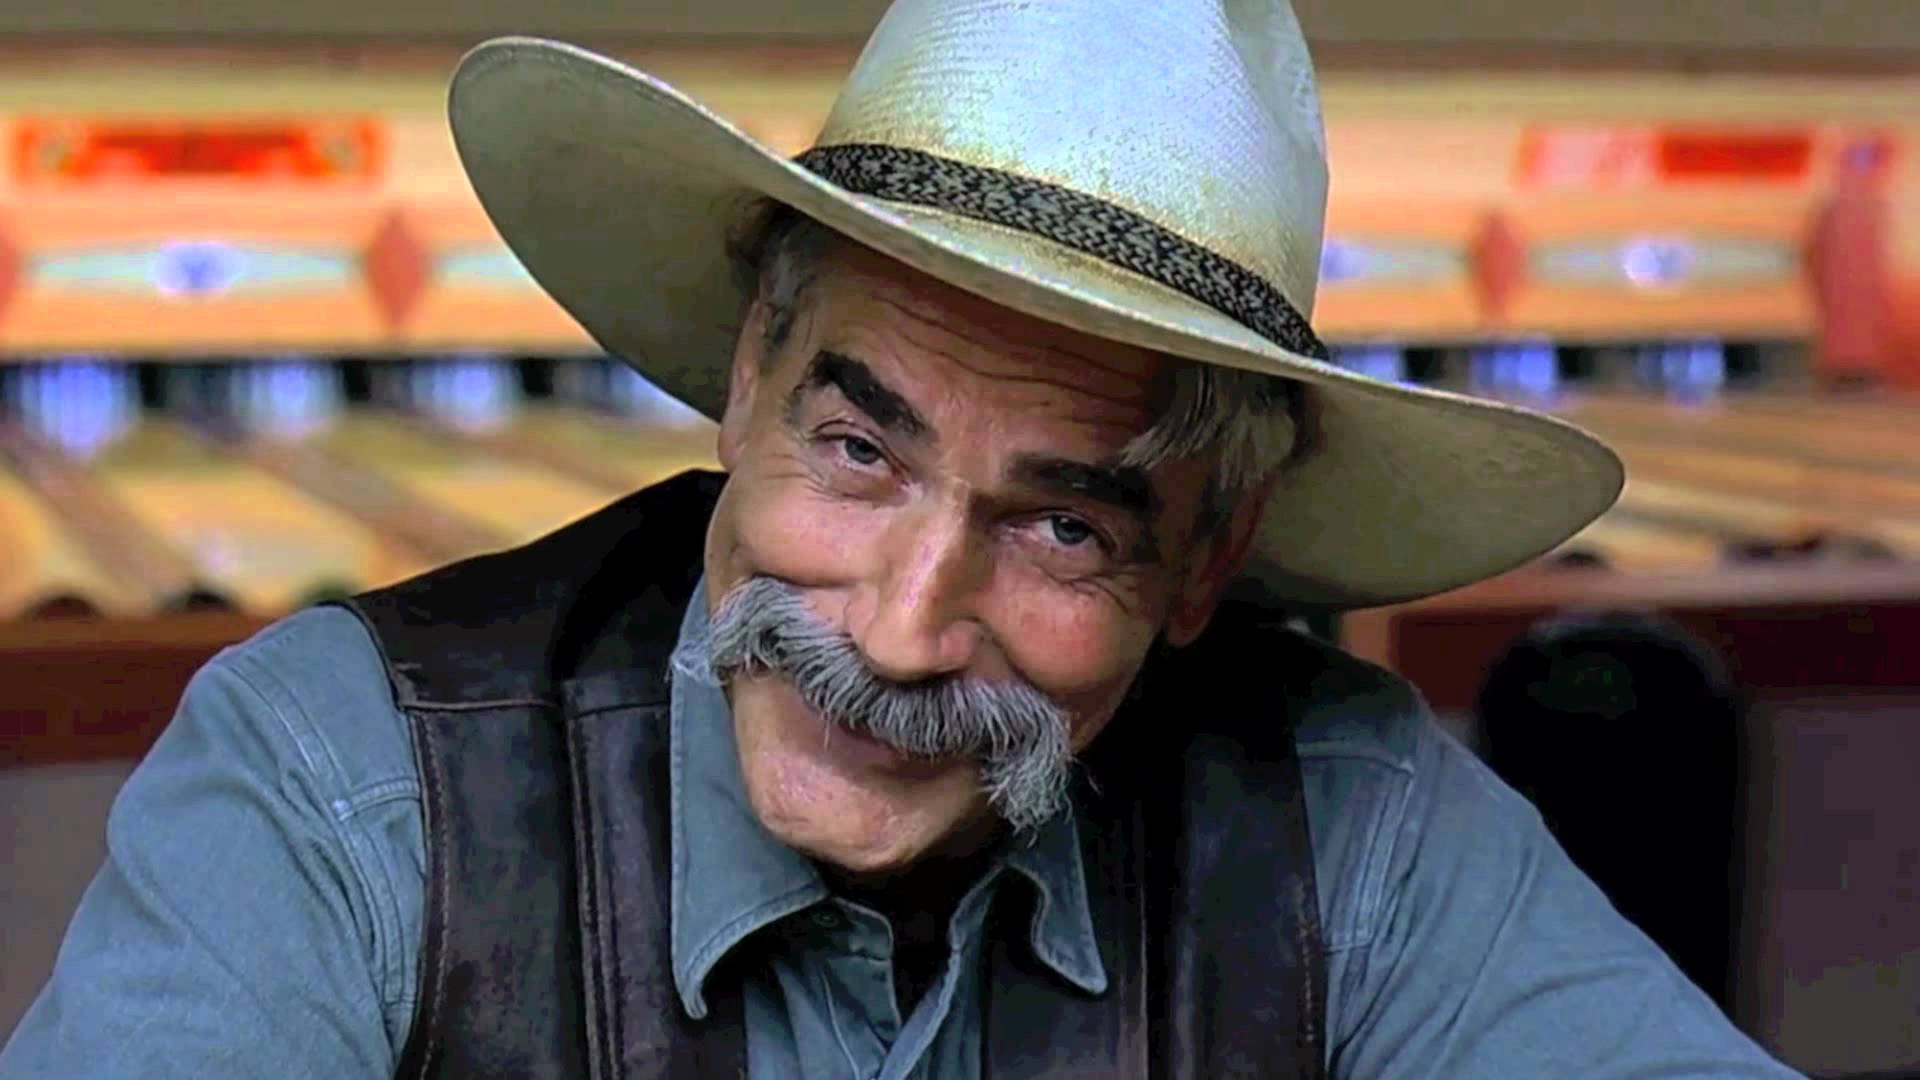 Sam Elliott in The Big Lebowski.